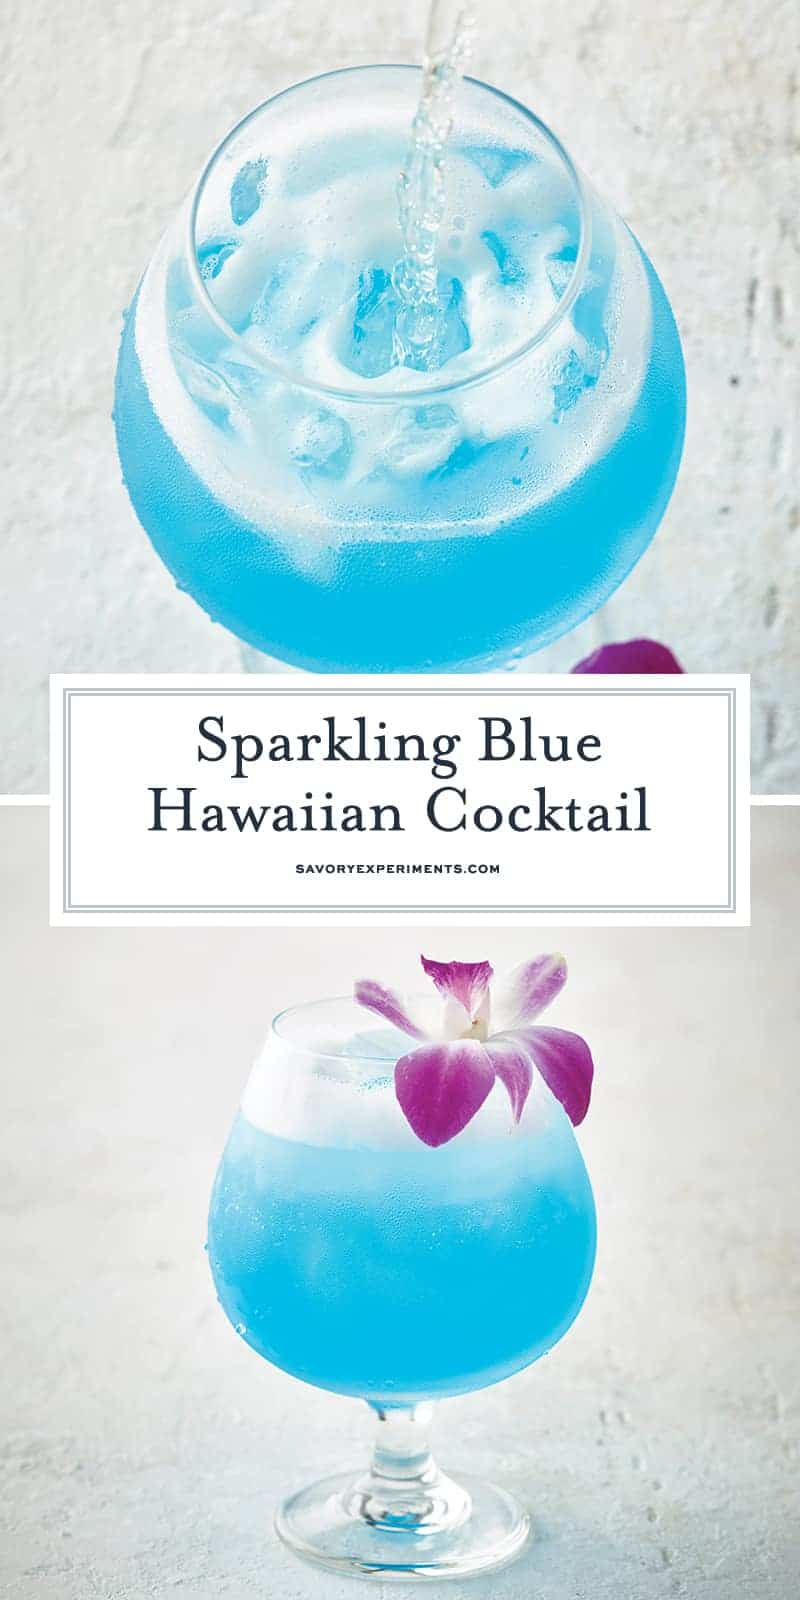 Sparkling Blue Hawaiian Cocktail is a refreshing tropical cocktail recipe perfect for luau theme parties or a lazy Sunday afternoon. #bluehawaiian #cocktailrecipes #tropicaldrinks www.savoryexperiments.com